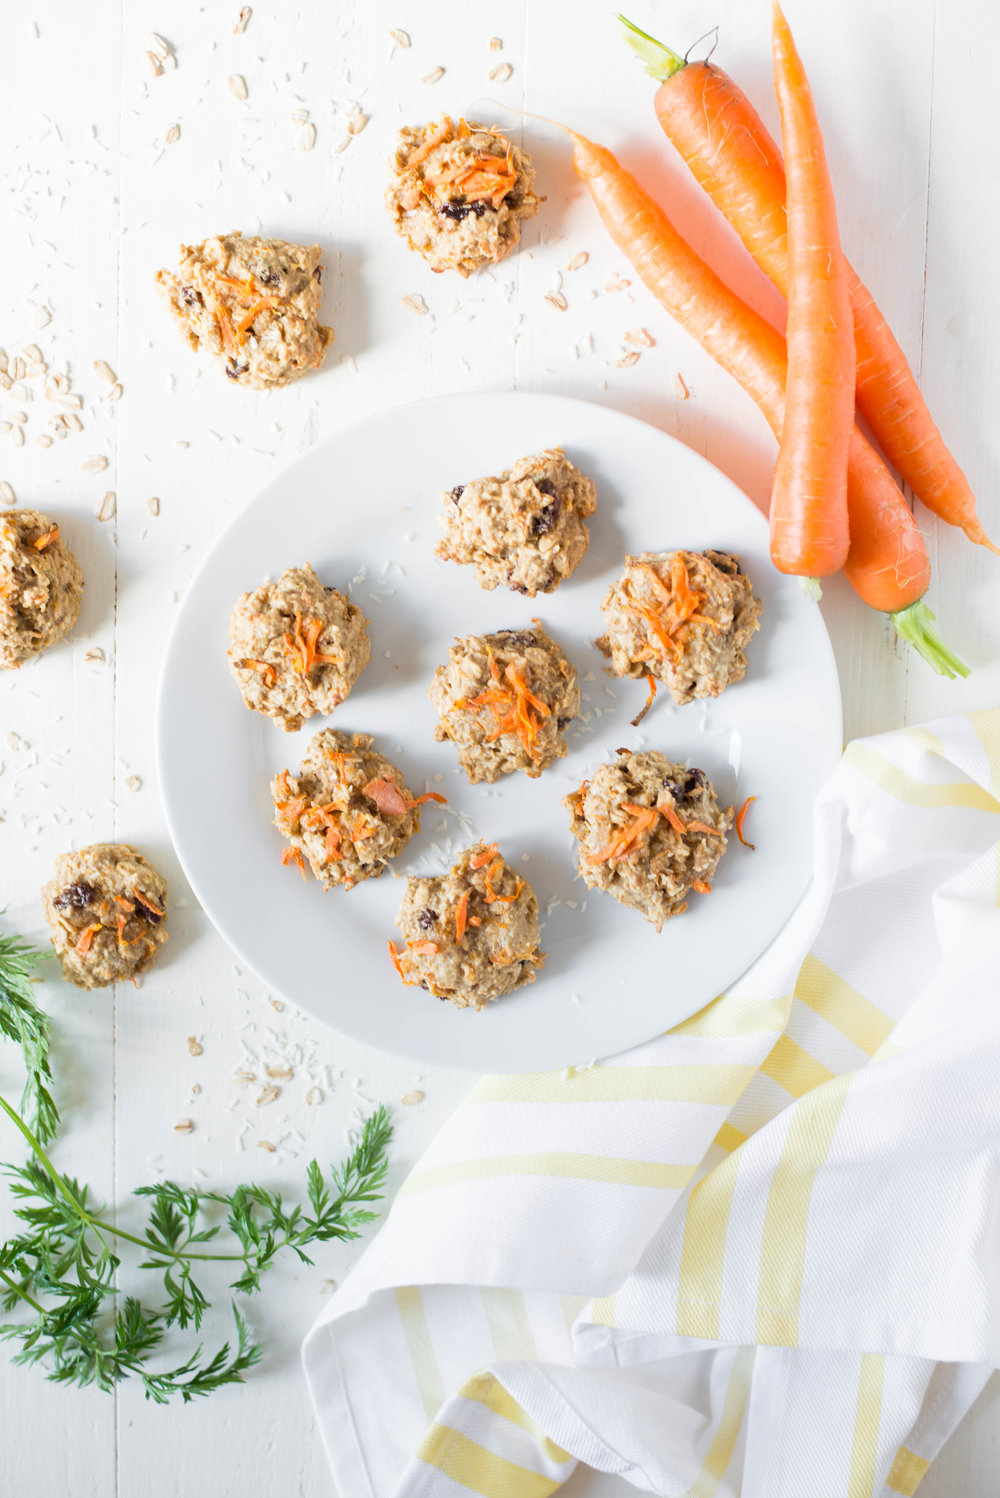 Naturally sweet and packed with plant goodness, One-Bowl Carrot Cake Breakfast Cookies are perfect for breakfast on-the-go or as a sweet snack anytime!